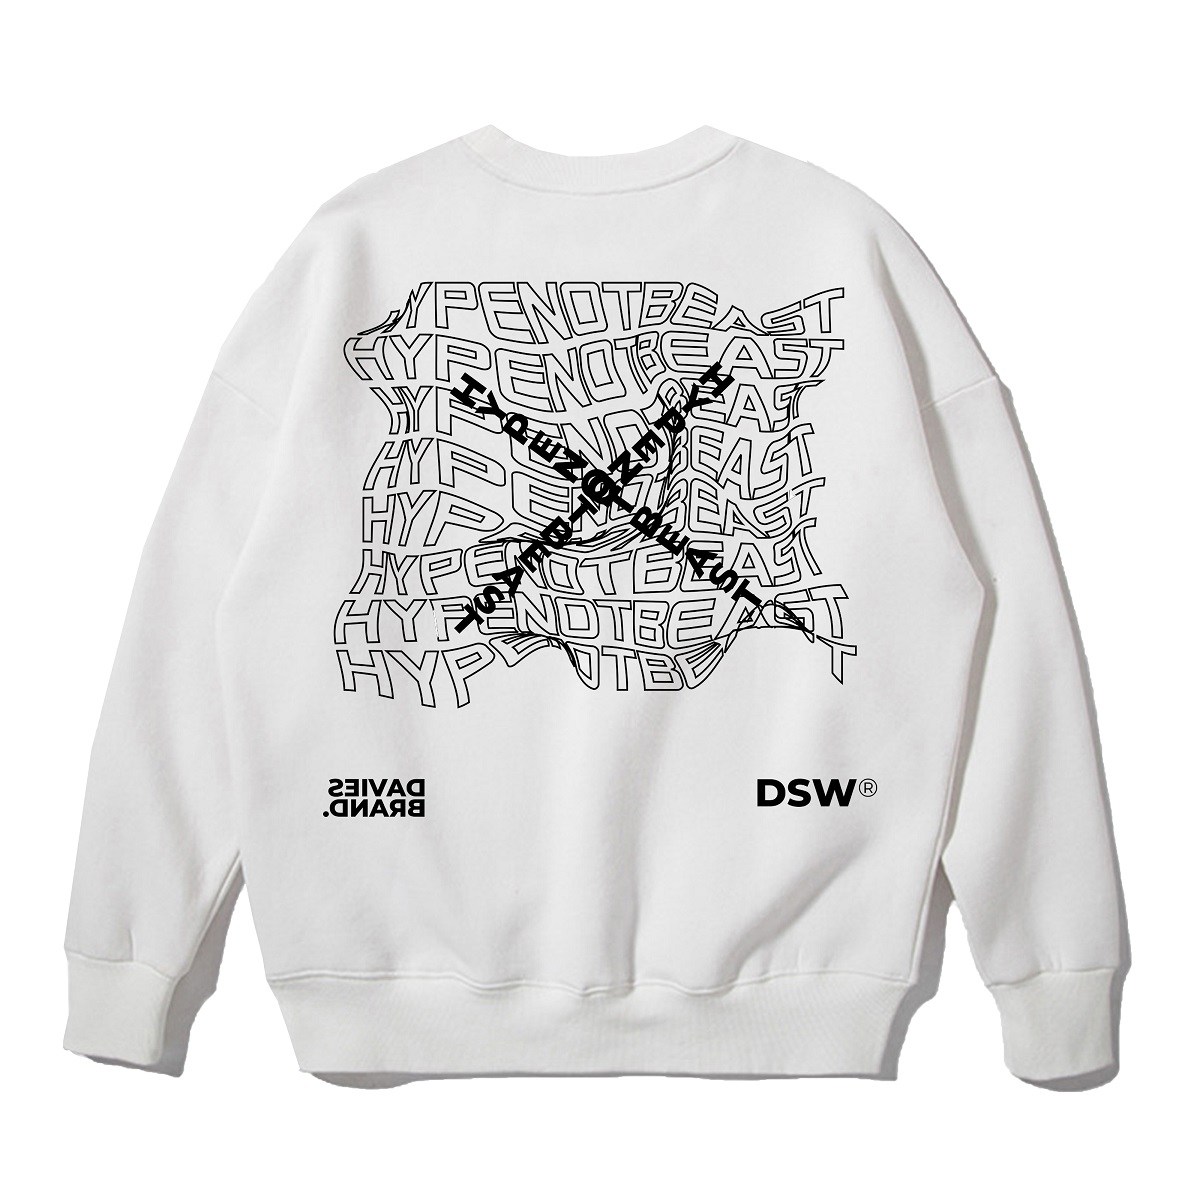 DSW SWEATER HYPE NOT BEAST - White